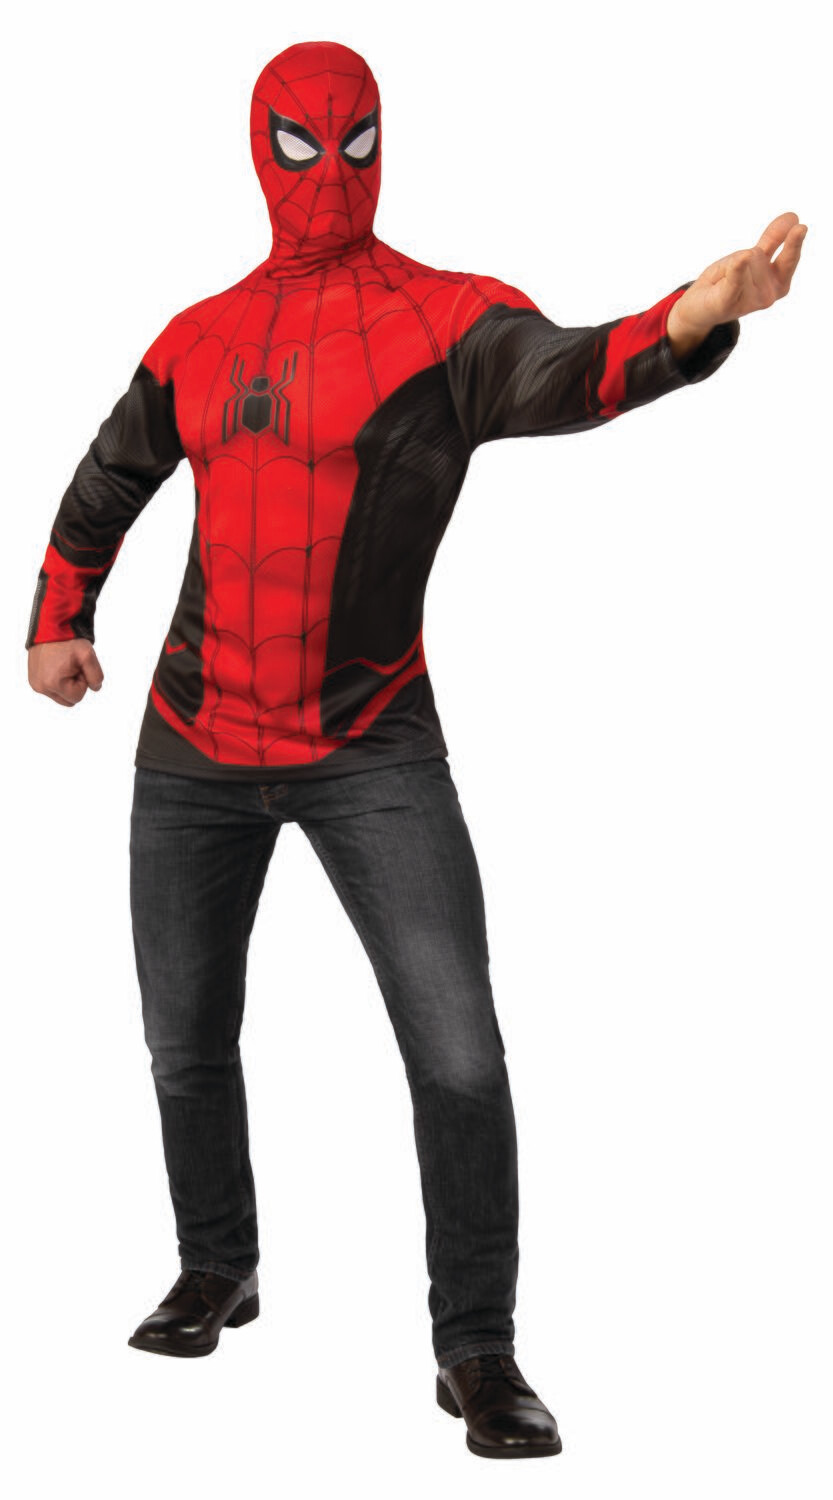 Spider-Man: Far From Home Spider-Man Red/Black Suit Costume Top - Adult